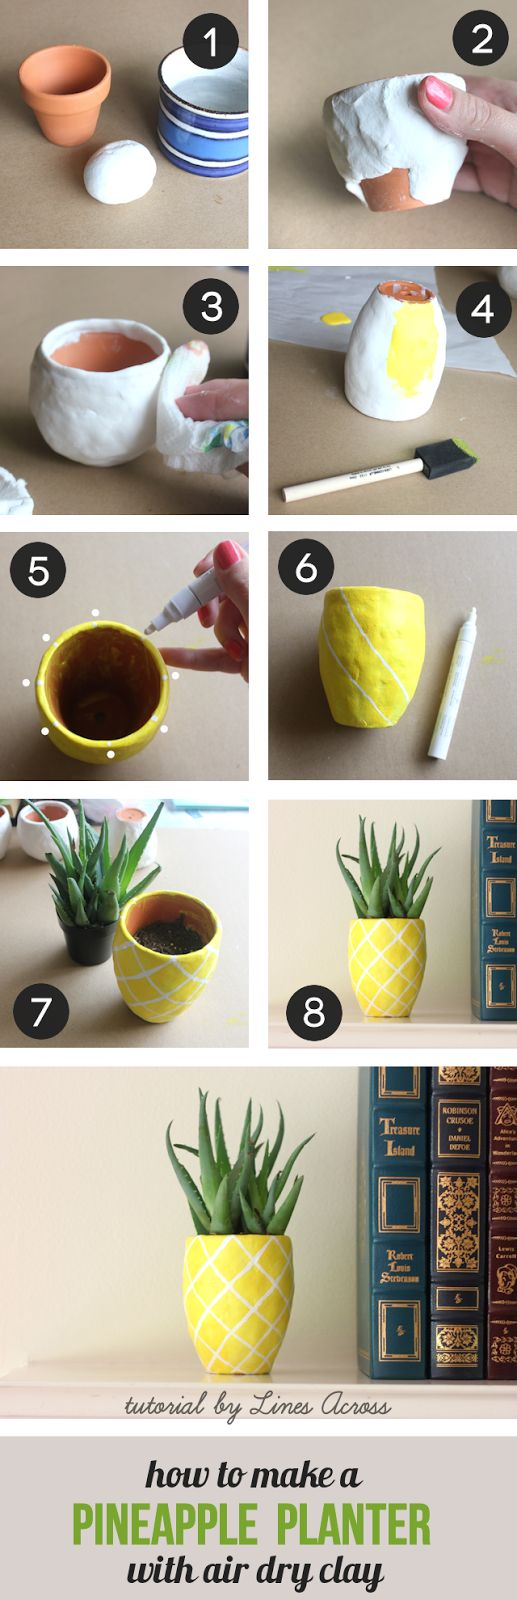 Diy pineapple planter using air dry clay